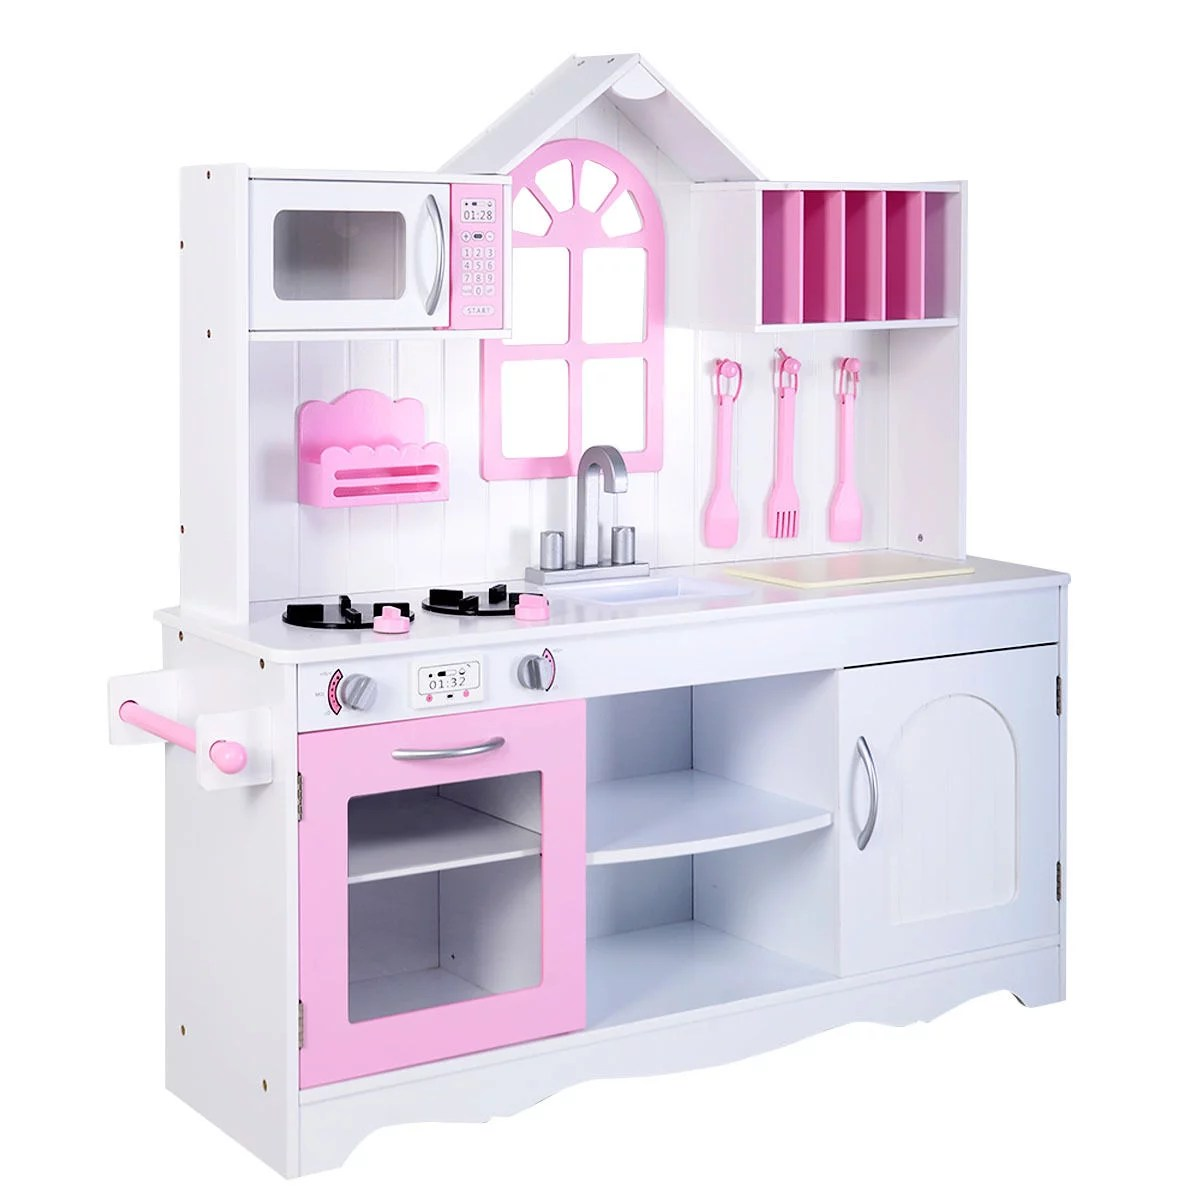 kids wooden kitchen aid stand mixer cover costway wood toy cooking pretend play set toddler playset walmart com